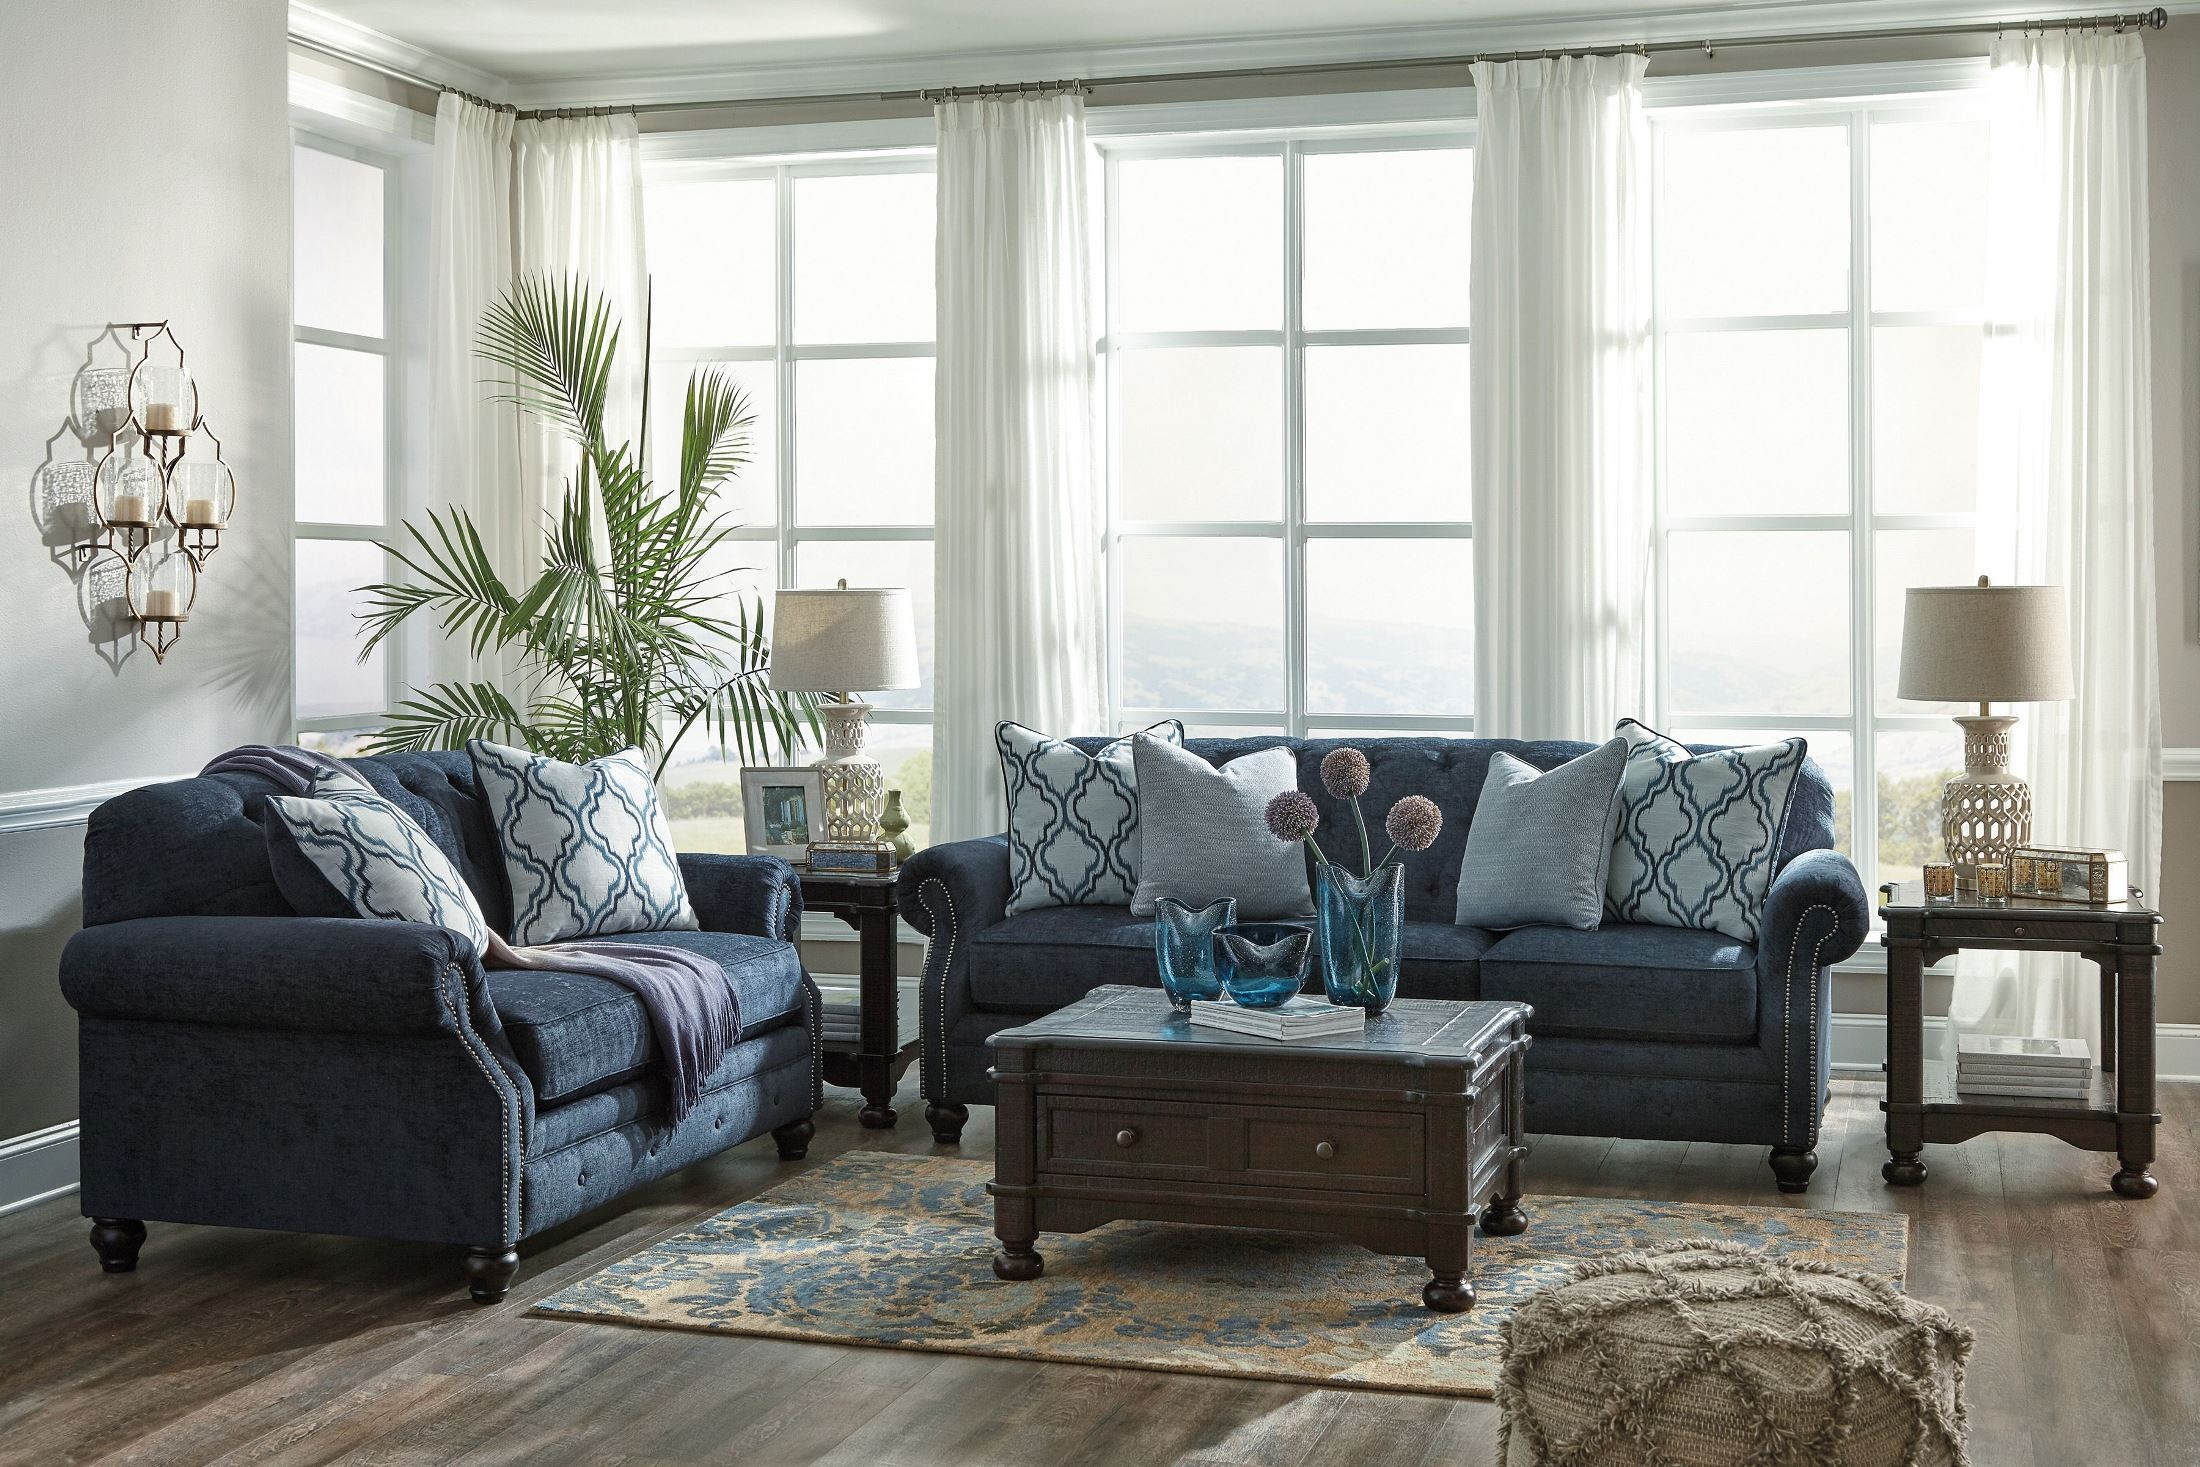 cloud sofa for sale best bed mattress replacement reviews lavernia navy living room set from ashley | coleman furniture